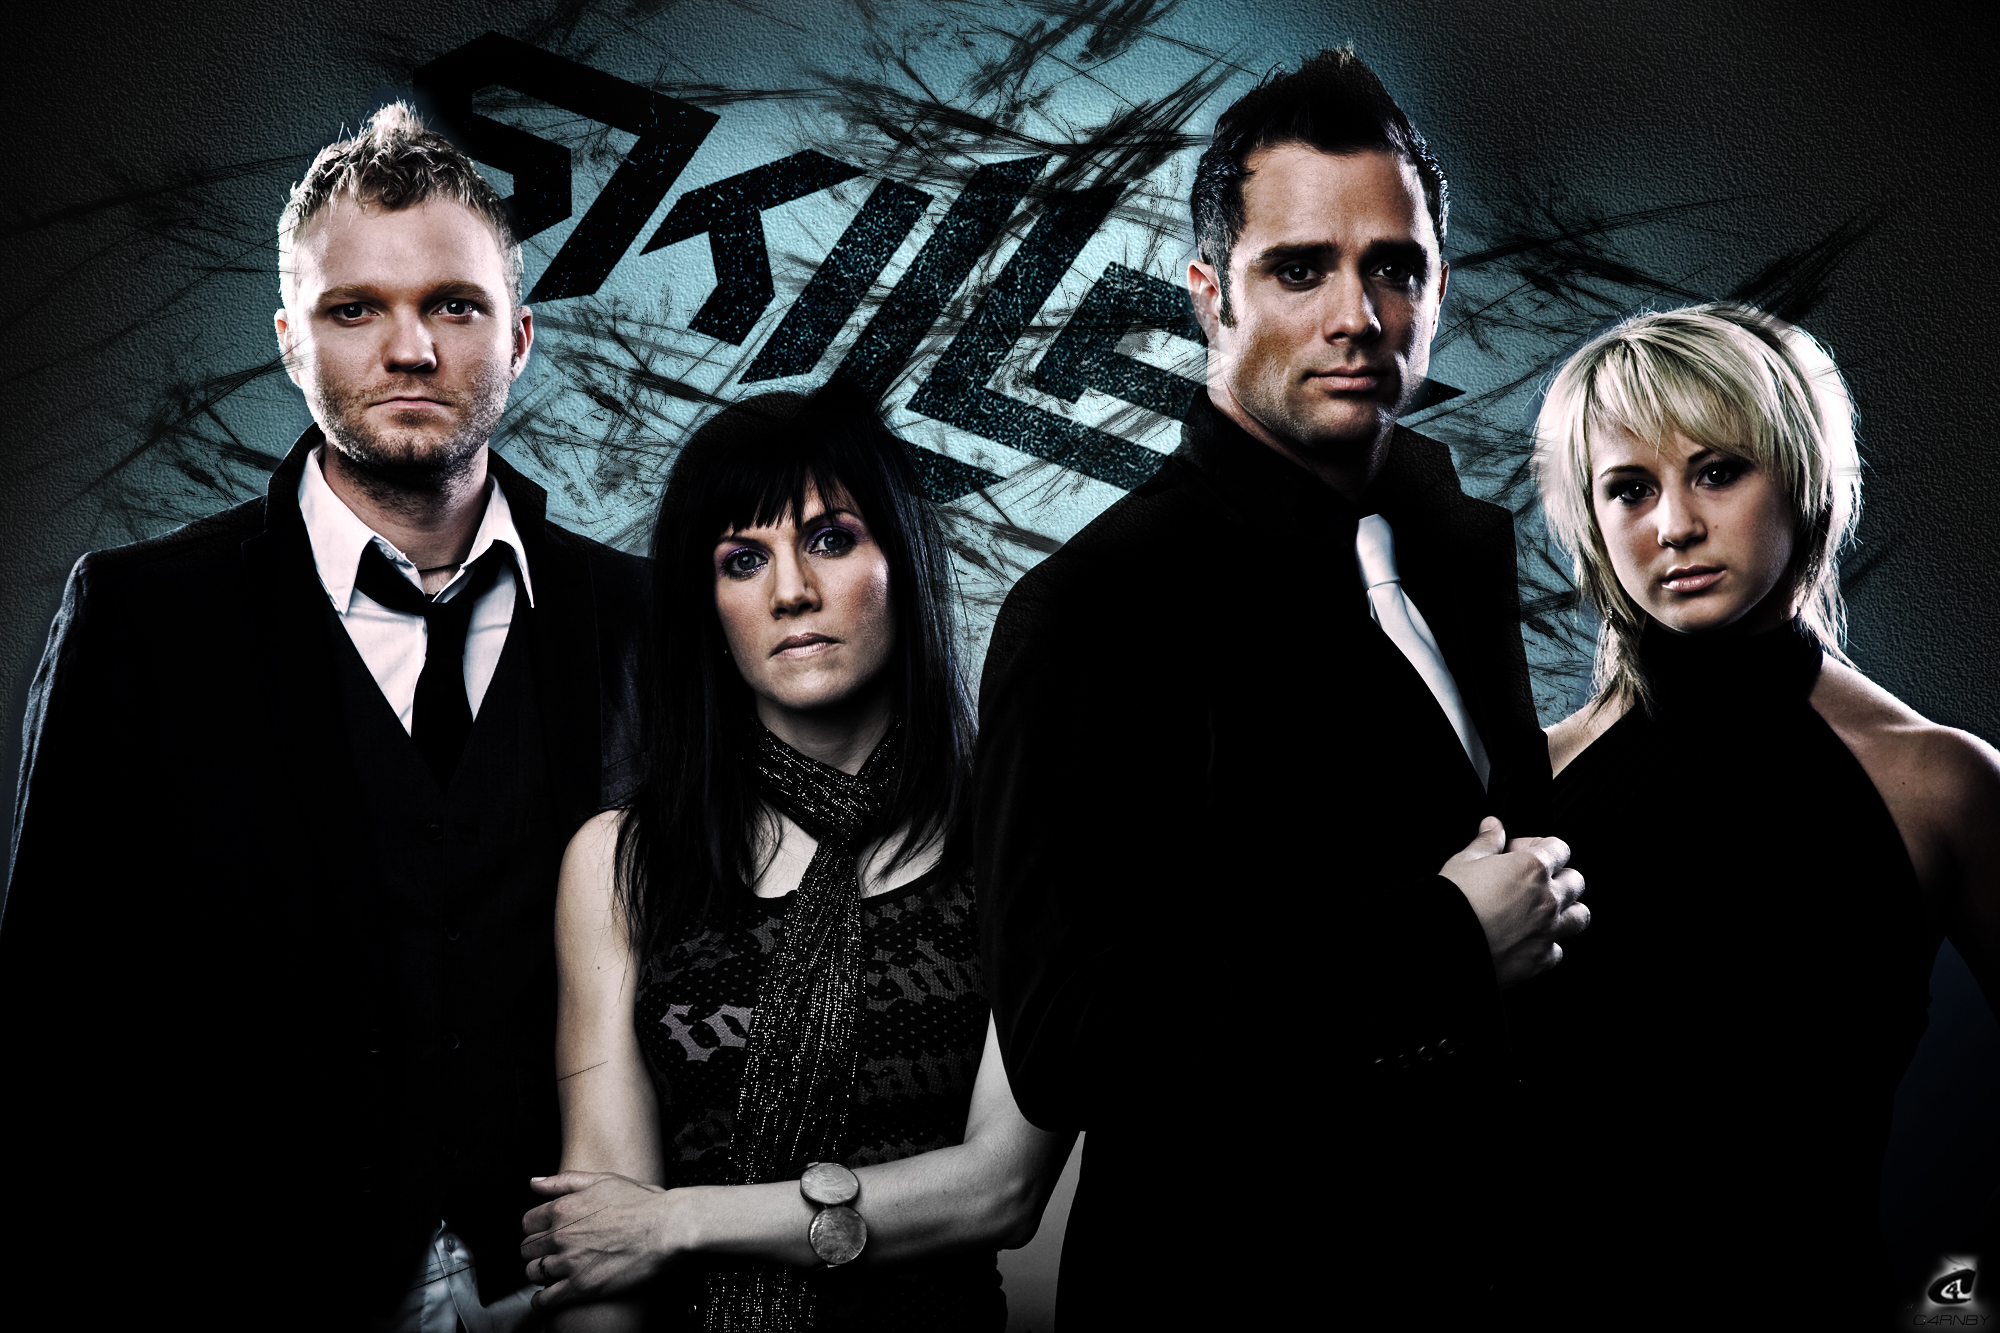 Download Discografia Skilet Skillet Baixar Mediafire